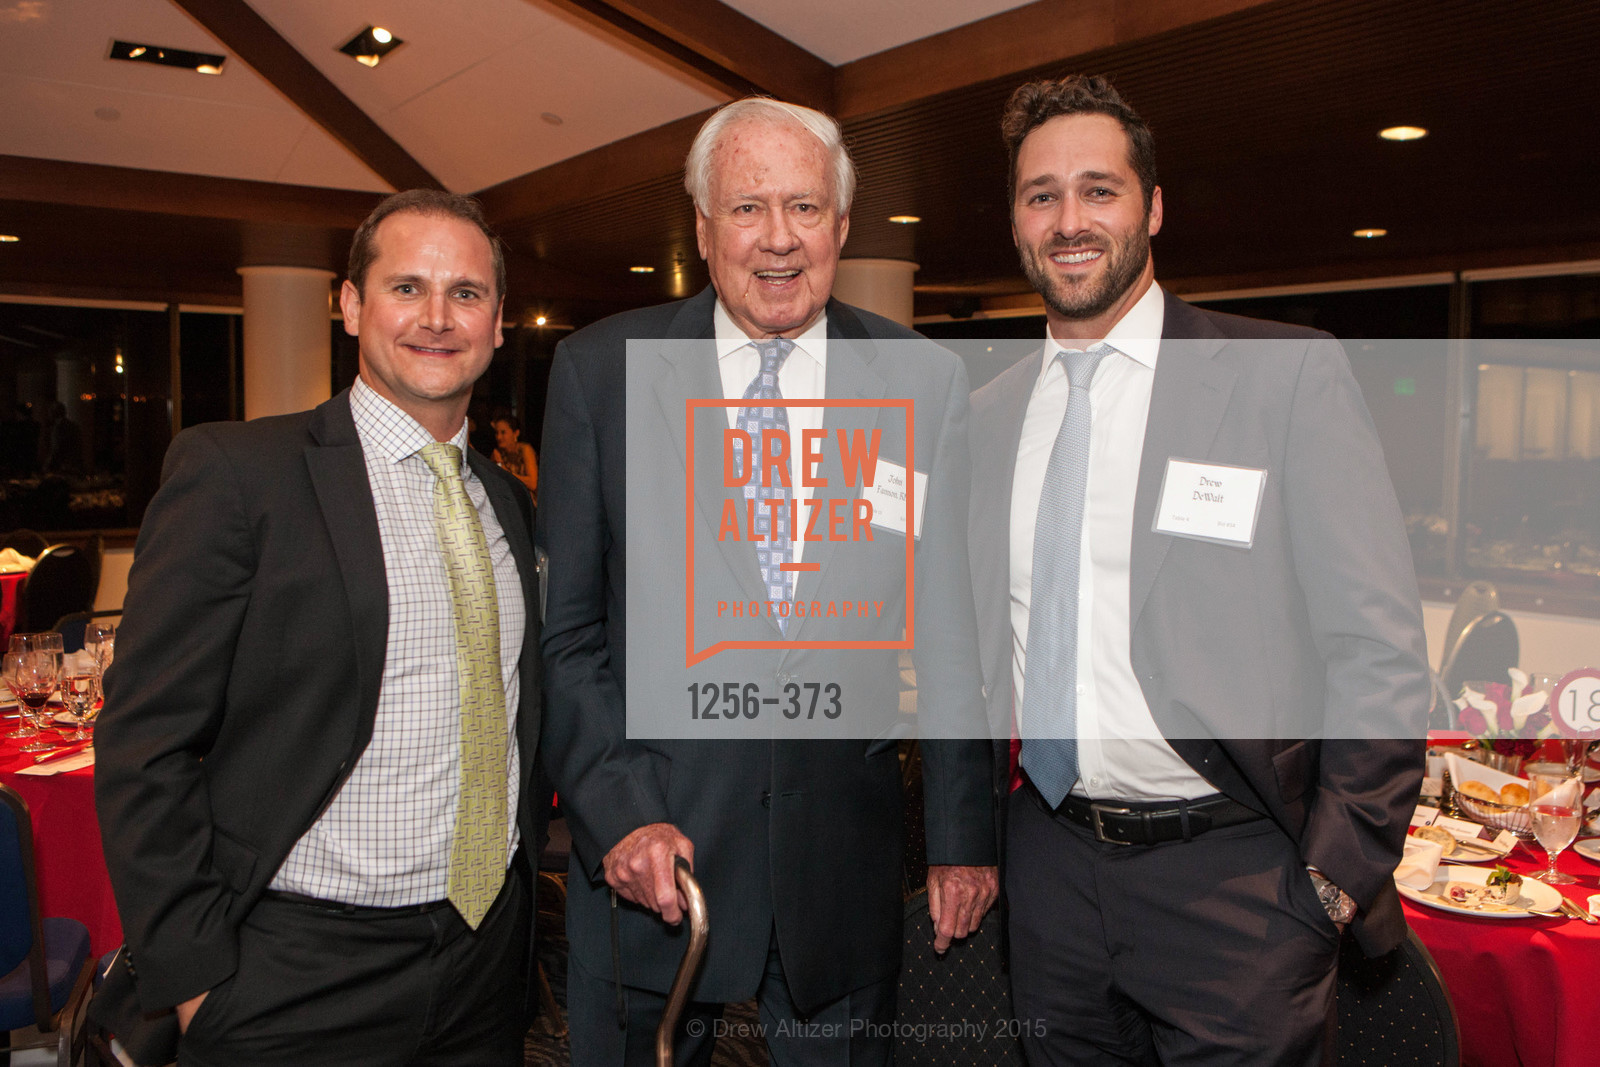 Zach Scheel, John Fannon, Drew DeWalt, Sovereign Order of Malta Presents: A Knight for Champions, 7th Annual Silver Chalice Awards Dinner, St. Francis Yacht Club. 99 Yacht Rd, October 13th, 2015,Drew Altizer, Drew Altizer Photography, full-service agency, private events, San Francisco photographer, photographer california